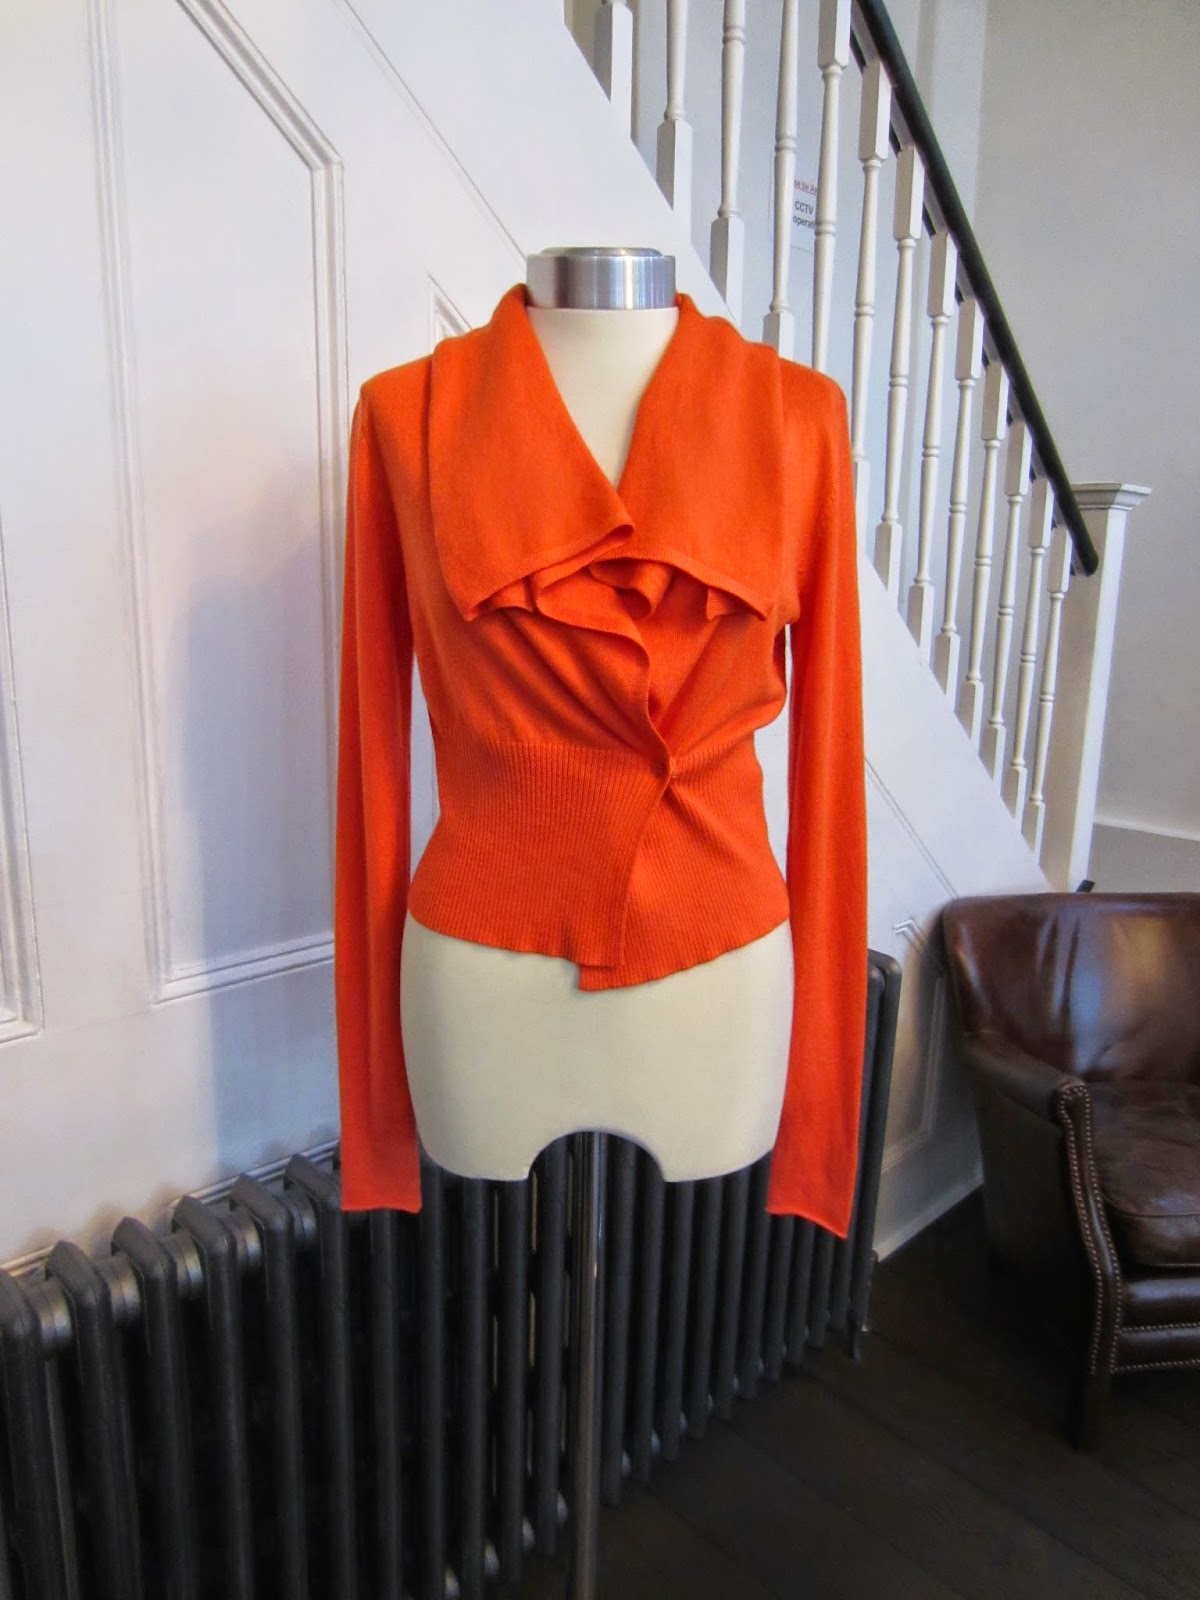 Nanette Lepore Orange Cardigan